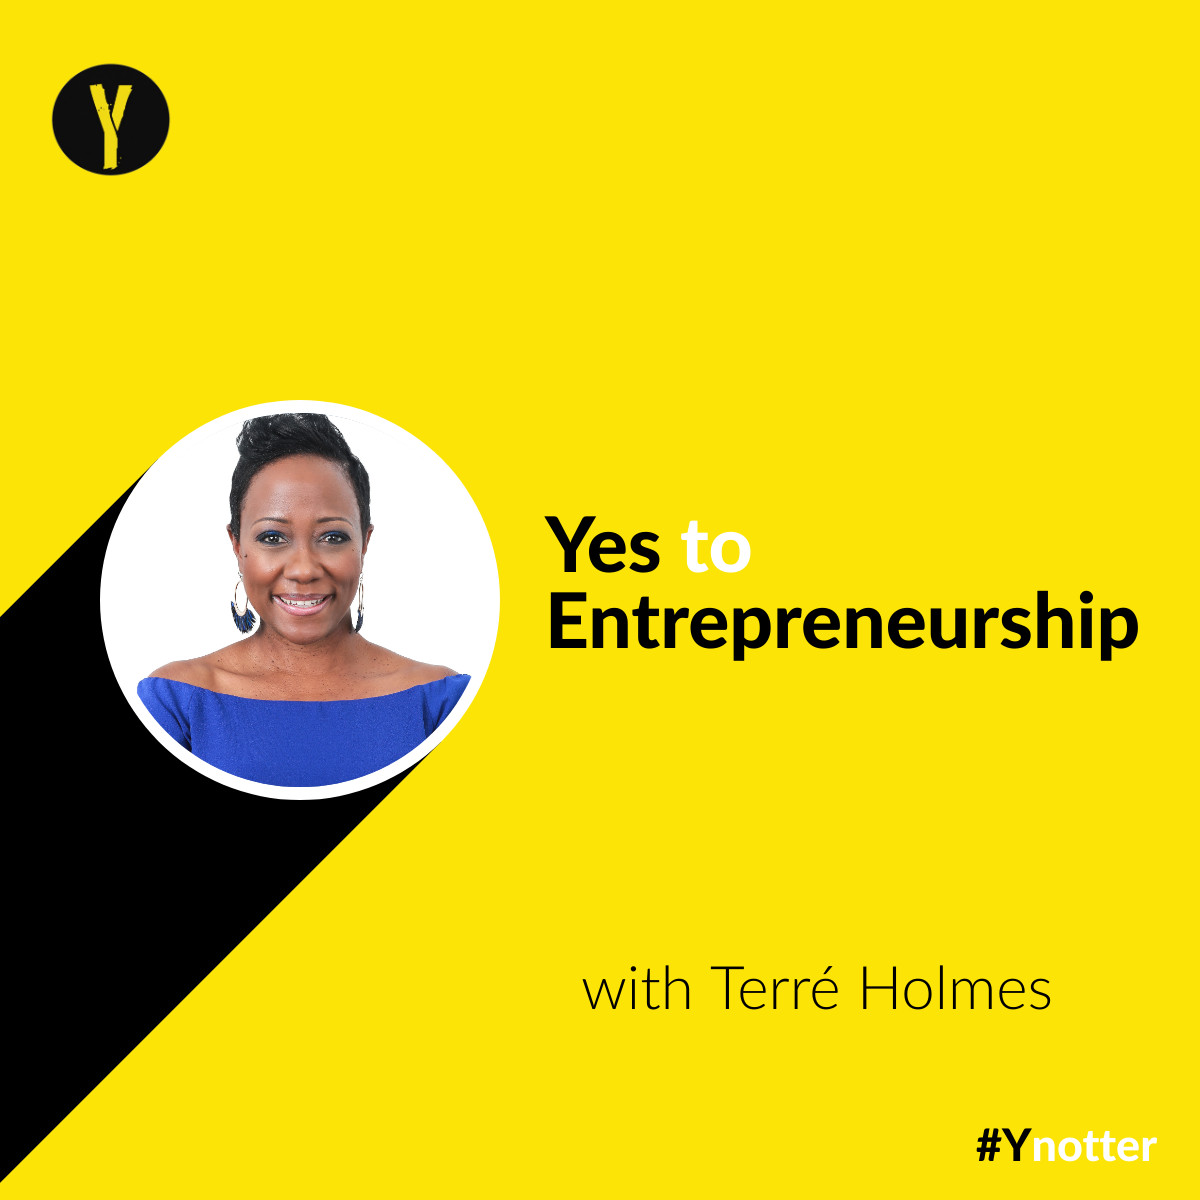 Struggling to find the right product to offer? How about how to market it? Tune into this episode!   Listen to Lifestyle Expert Terre Holmes as she shares her entrepreneurial journey over on the Yes to Entrepreneurship podcast! #Ynotter  Drop me a line  for a direct pic.twitter.com/Dzmz5KCC9Z